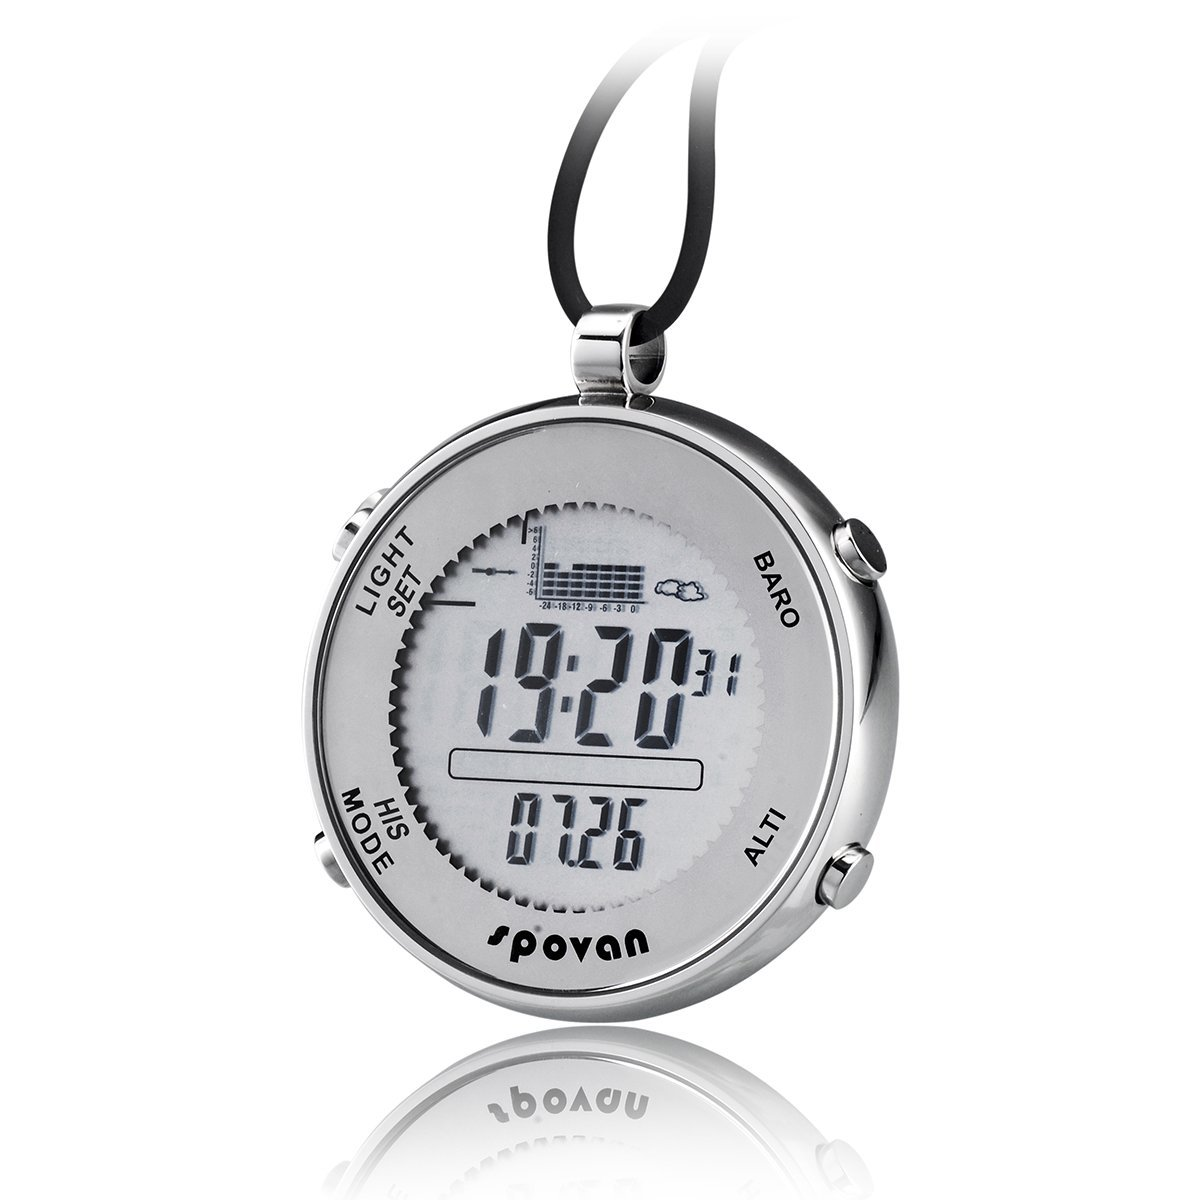 JUSHENG Spovan SPV600 Outdoor Waterproof Digital Fishing Barometer Unisex Pocket Watch Suitable for Climbing Running Fishing competition and other sports by JUSHENG